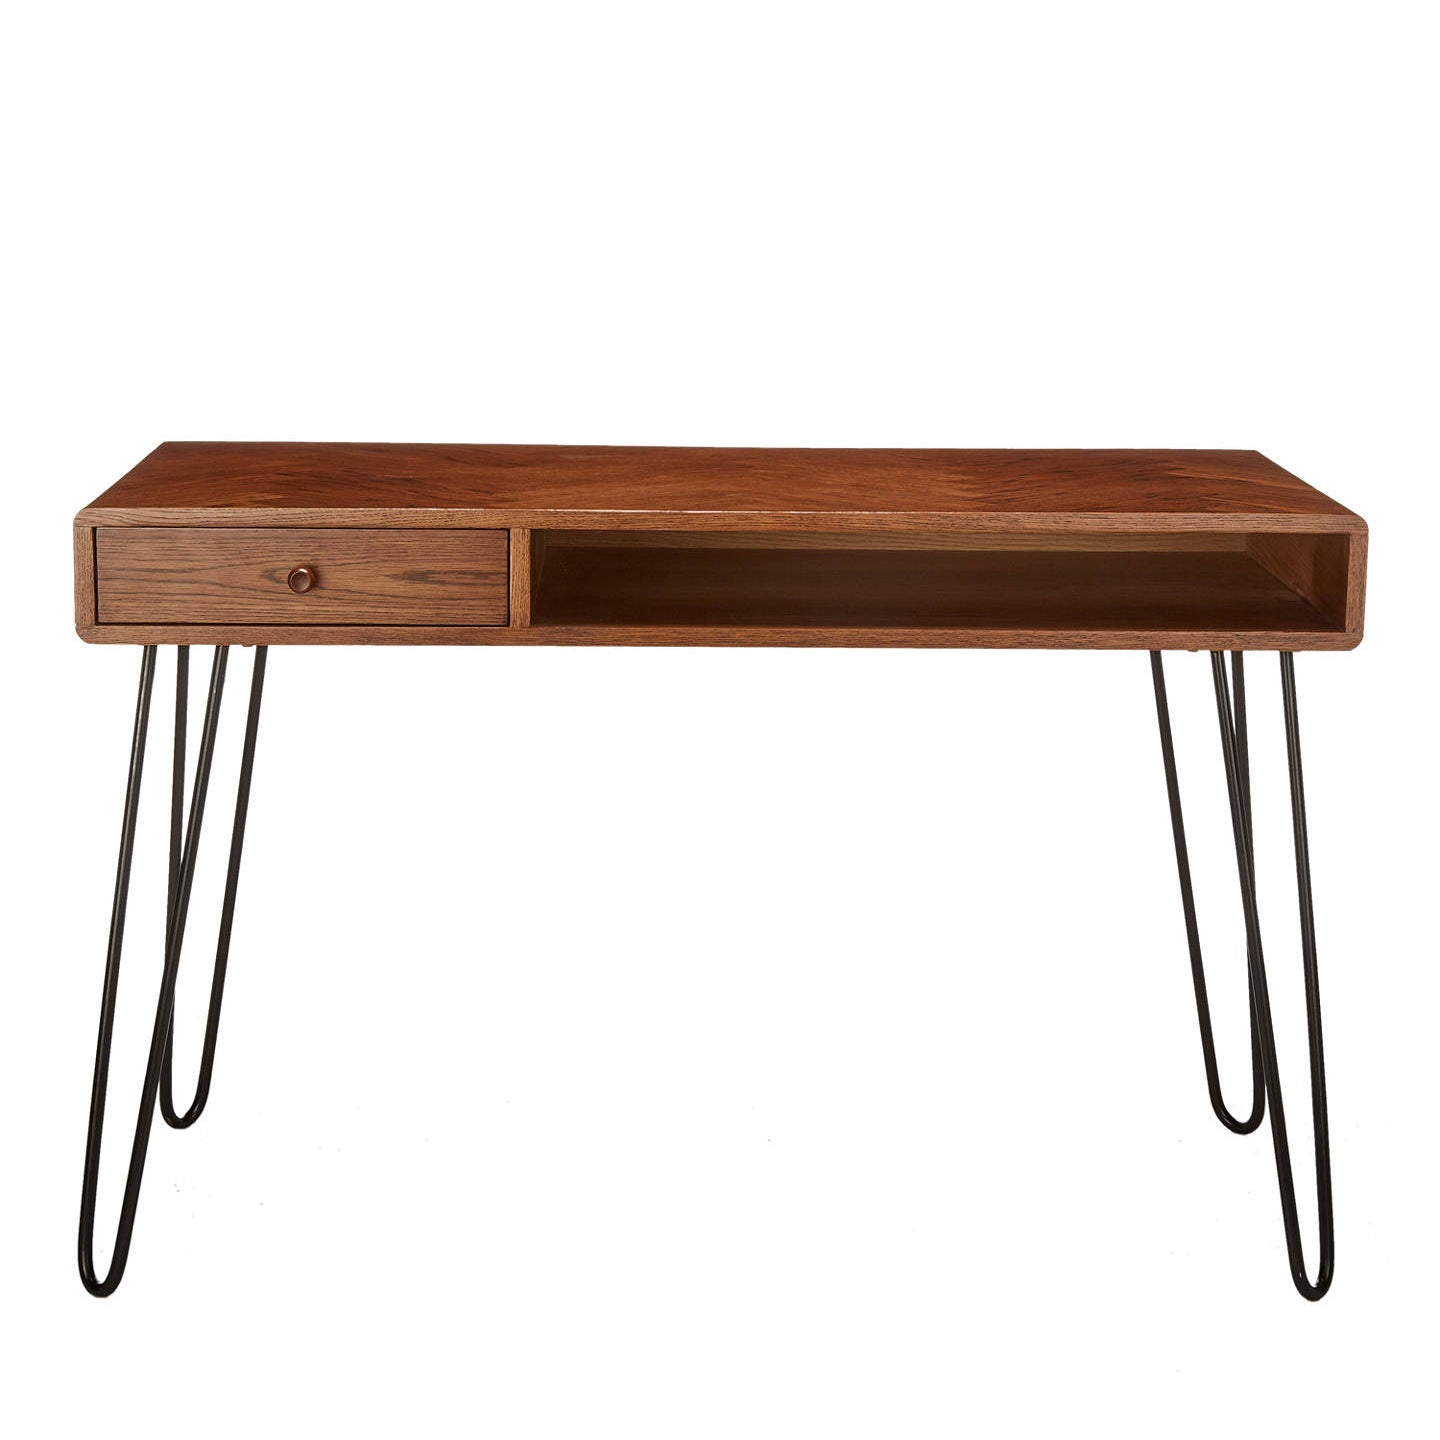 Narrow hairpin leg desk